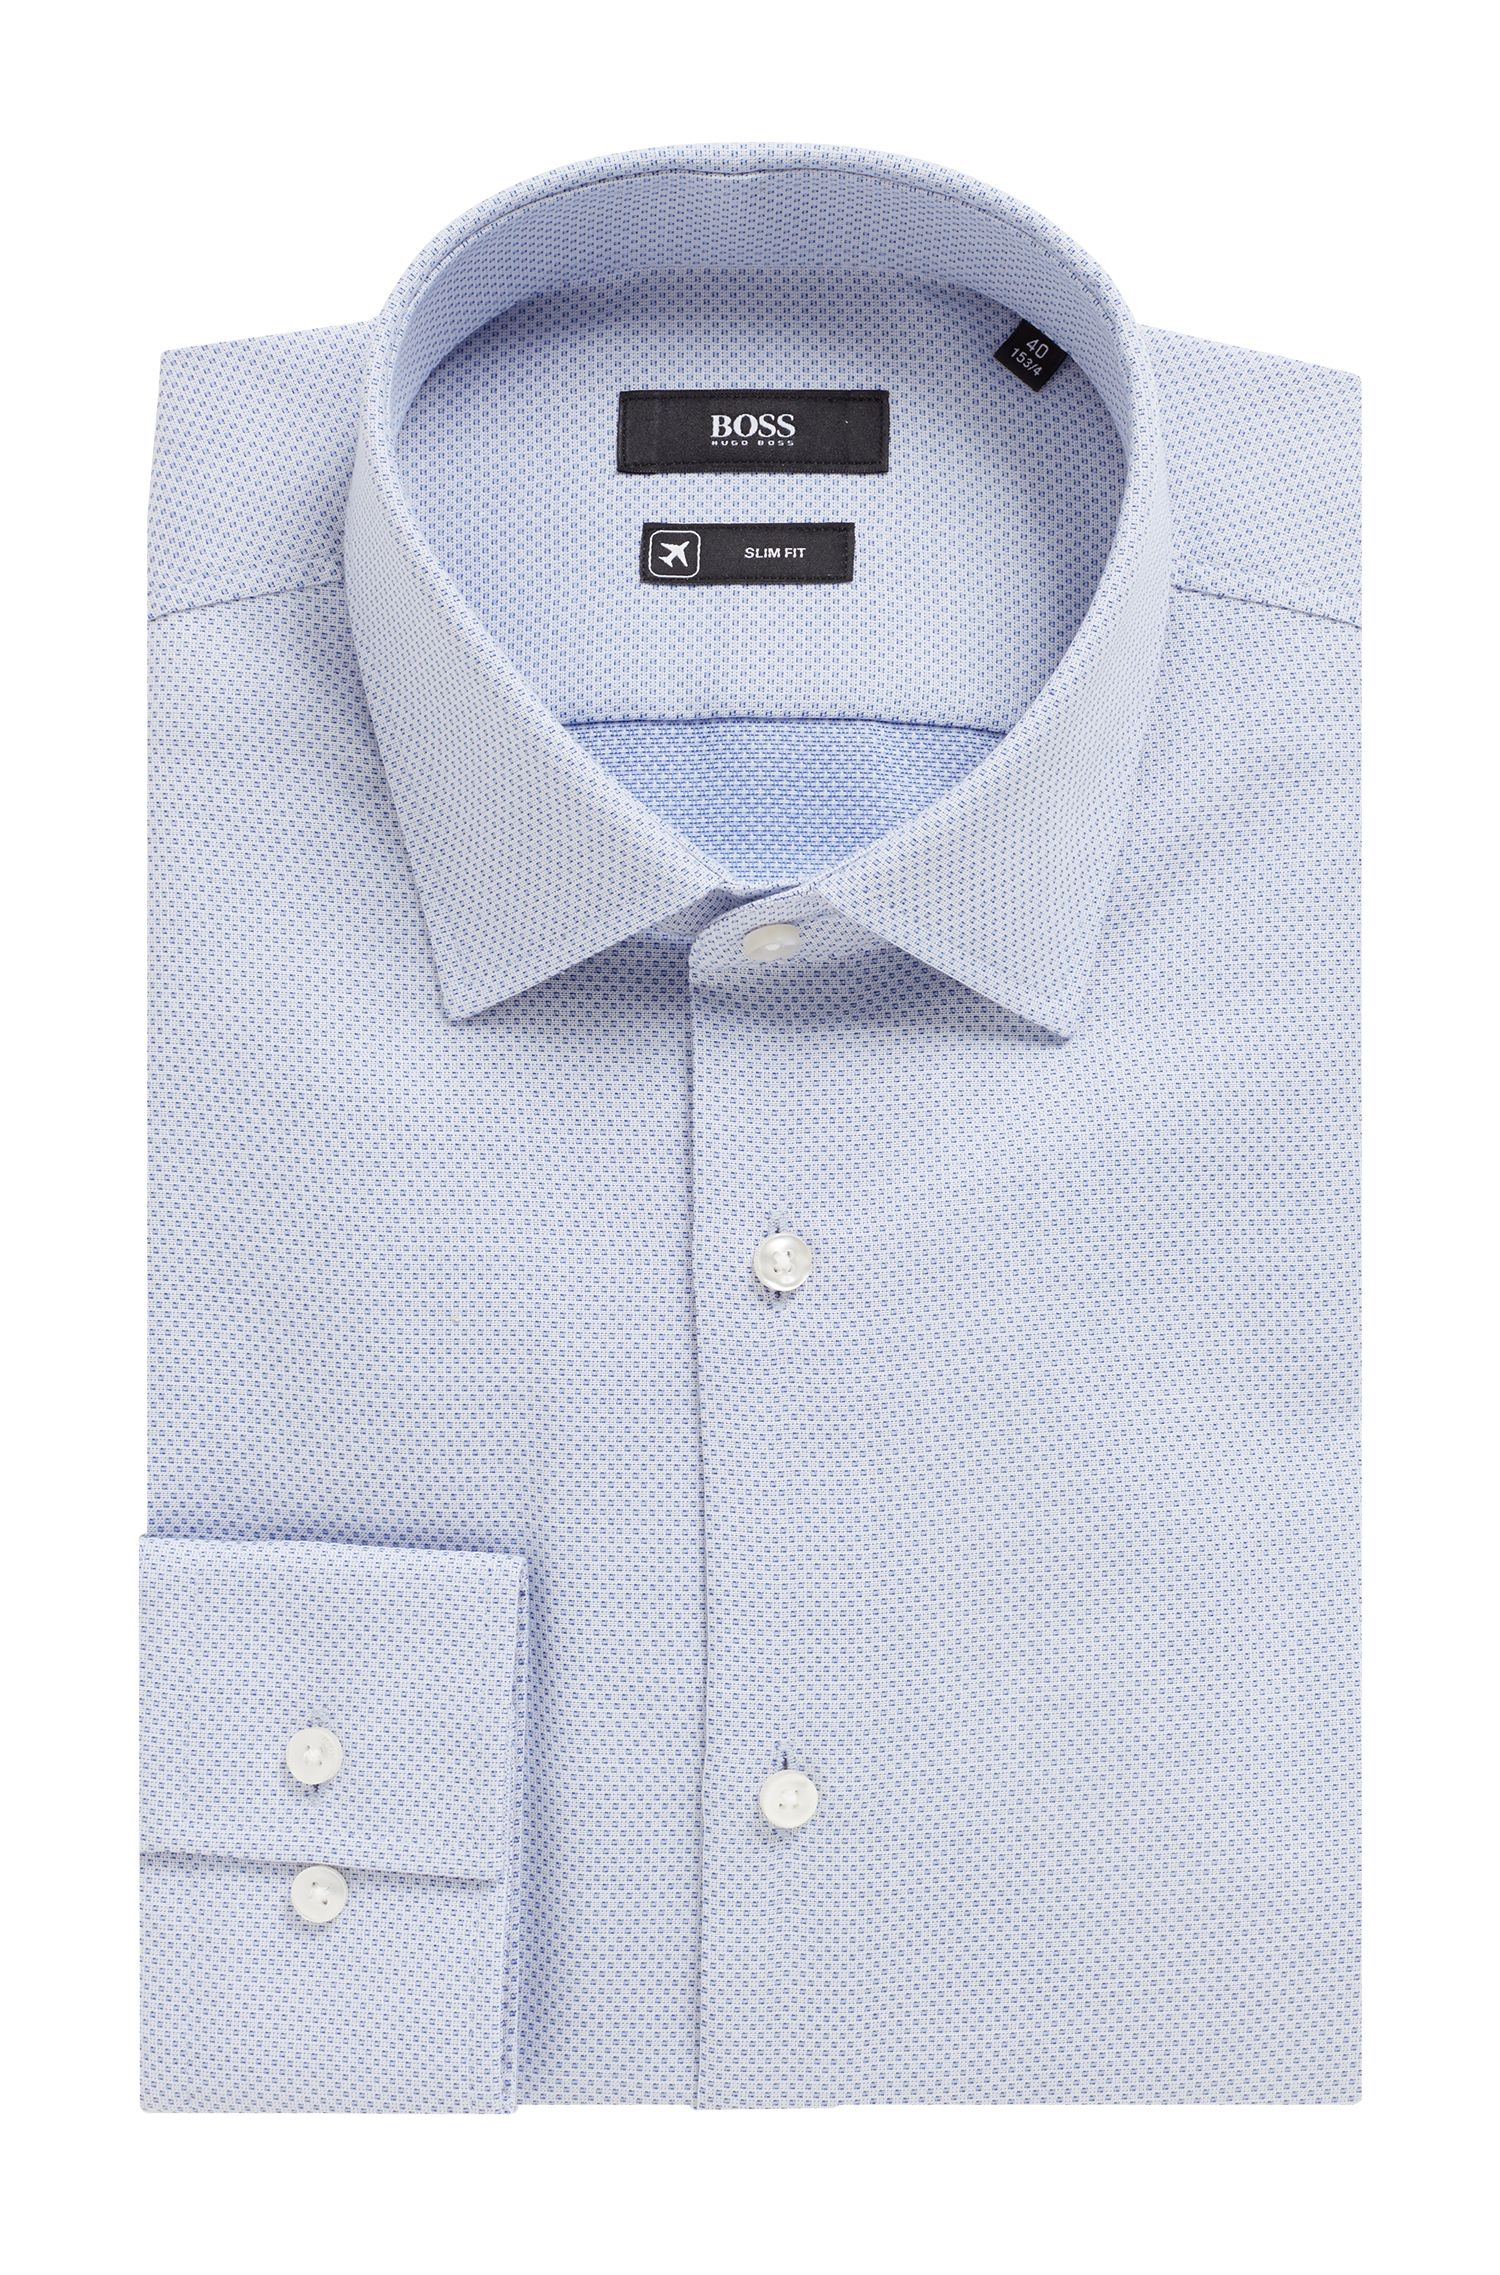 Hugo Boss - Slim-fit shirt in cotton with Aloe Vera finishing - 5